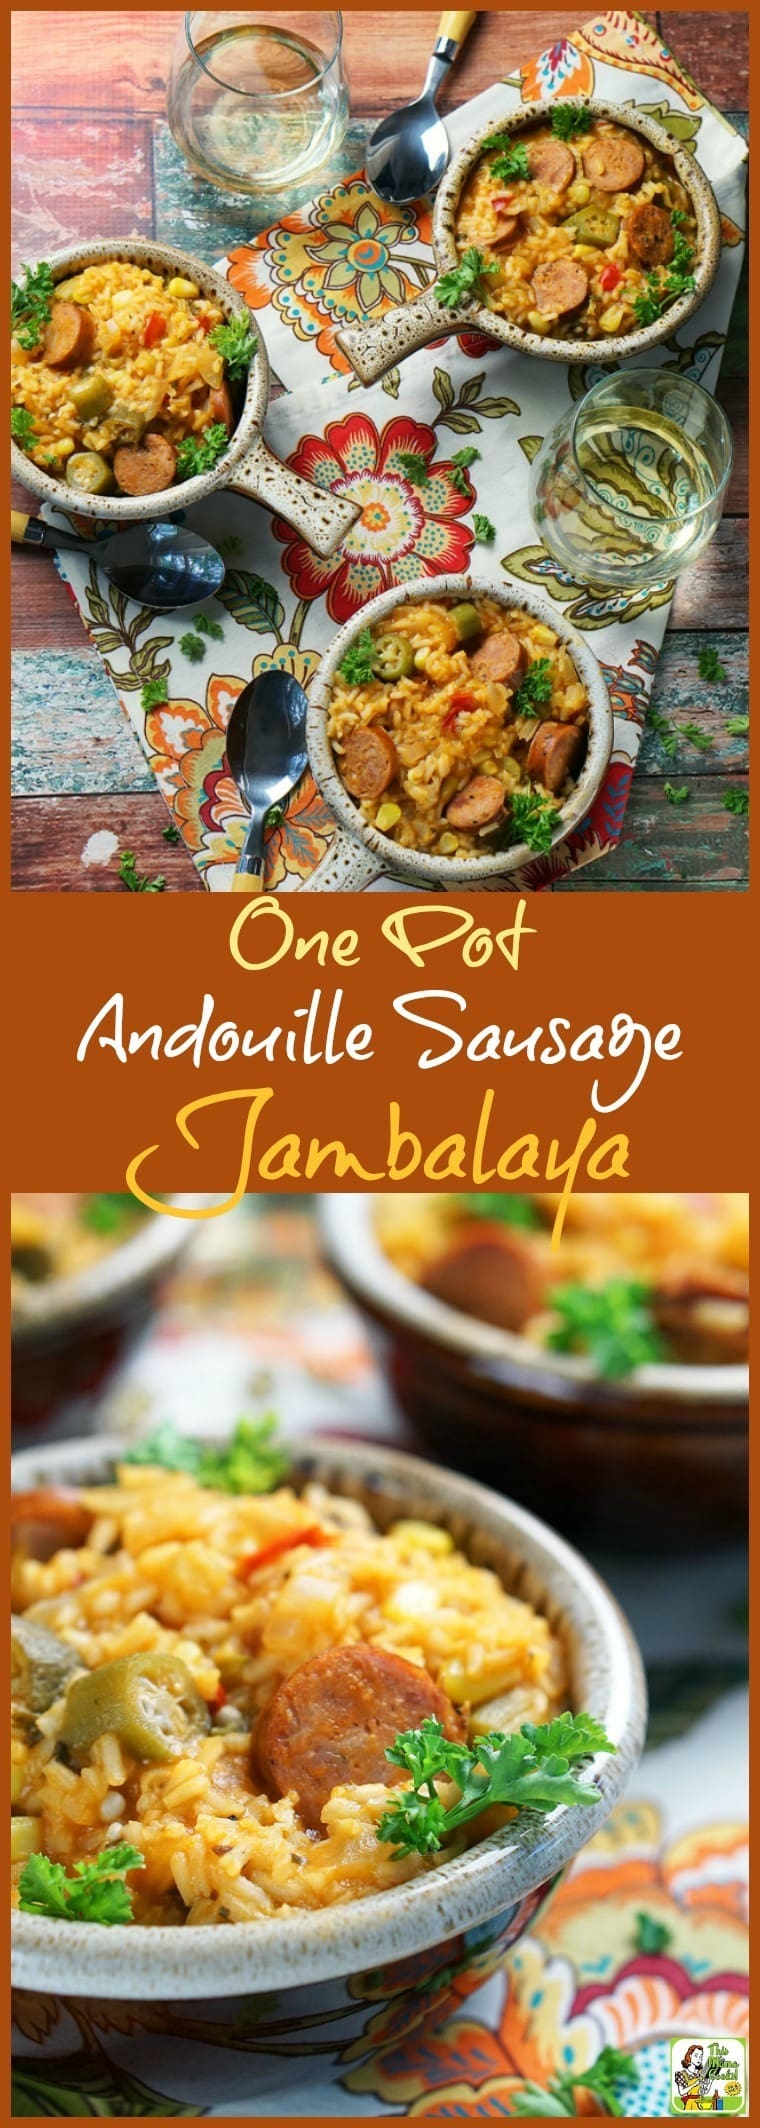 This easy One Pot Andouille Sausage Jambalaya recipe is ideal for Mardi Gras parties. Or make it when you're in the mood for a spicy one pot recipe the whole family will love. It's naturally gluten free and filled with healthy vegetables, too!